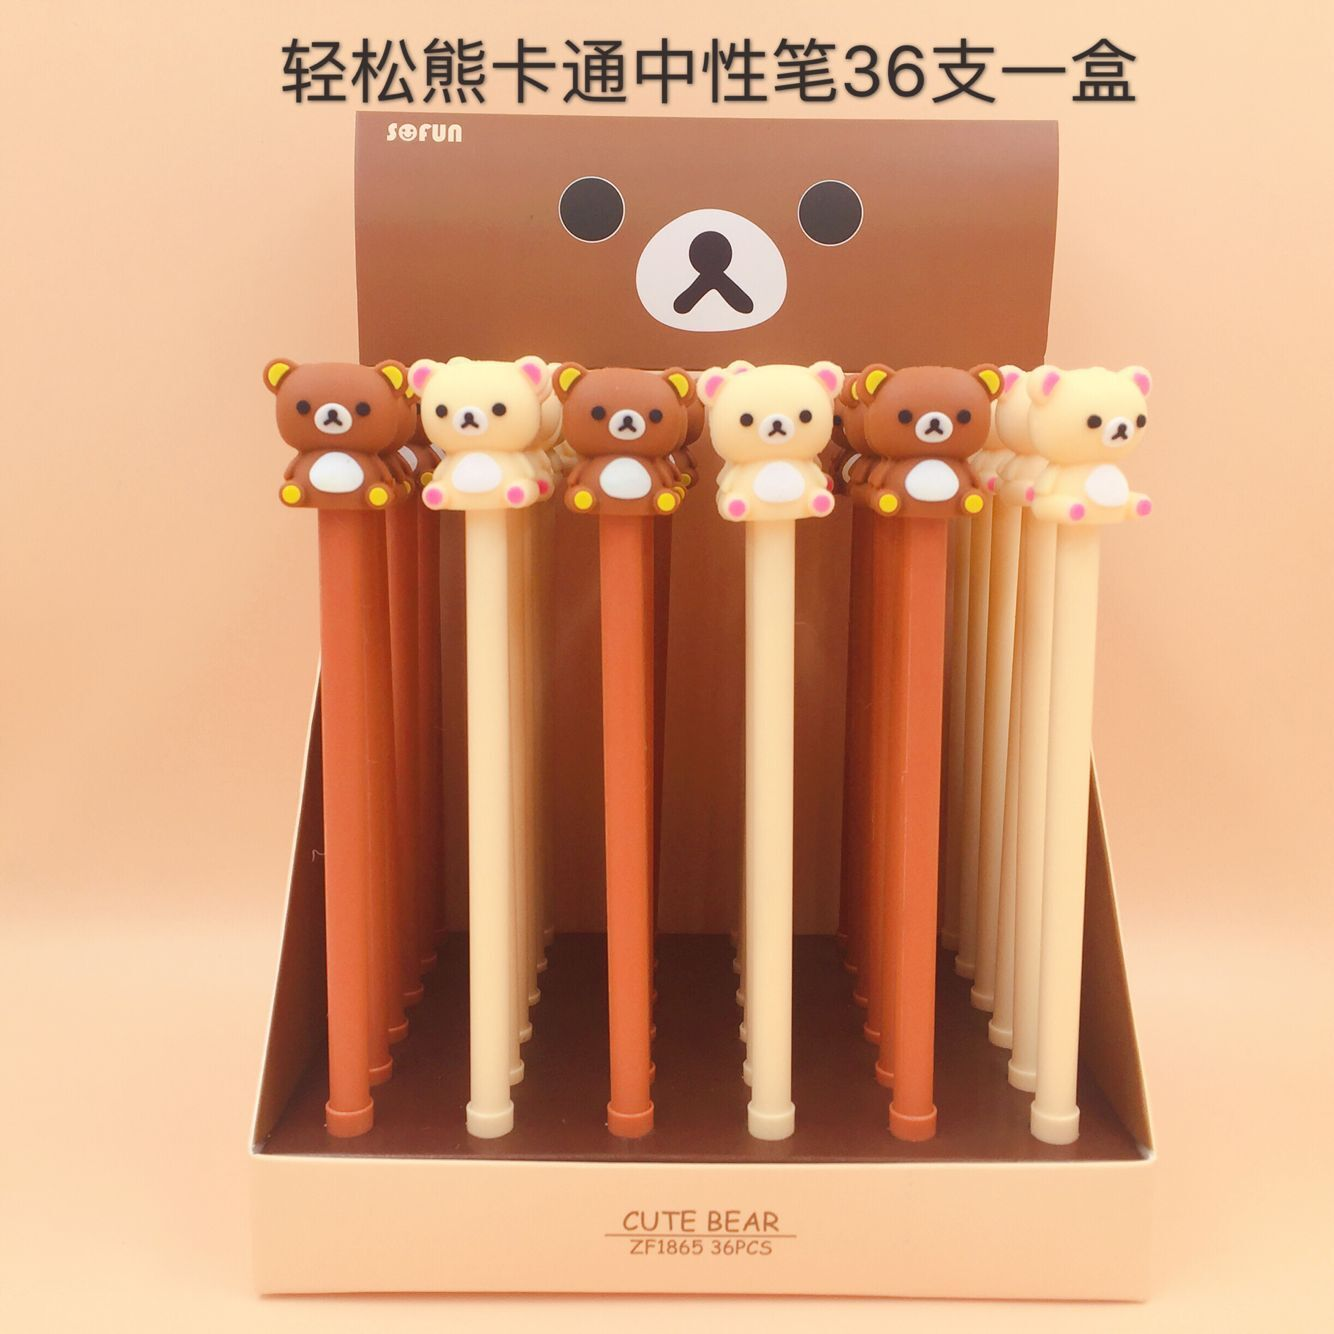 2 pcs/lot Rilakkuma Baby Gel Pen Signature Pen Escolar Papelaria School Office Supply Promotional Gift 1 pcs novelty cute my neighbor totoro gel ink pens signature pen escolar papelaria office school supply promotional student gift